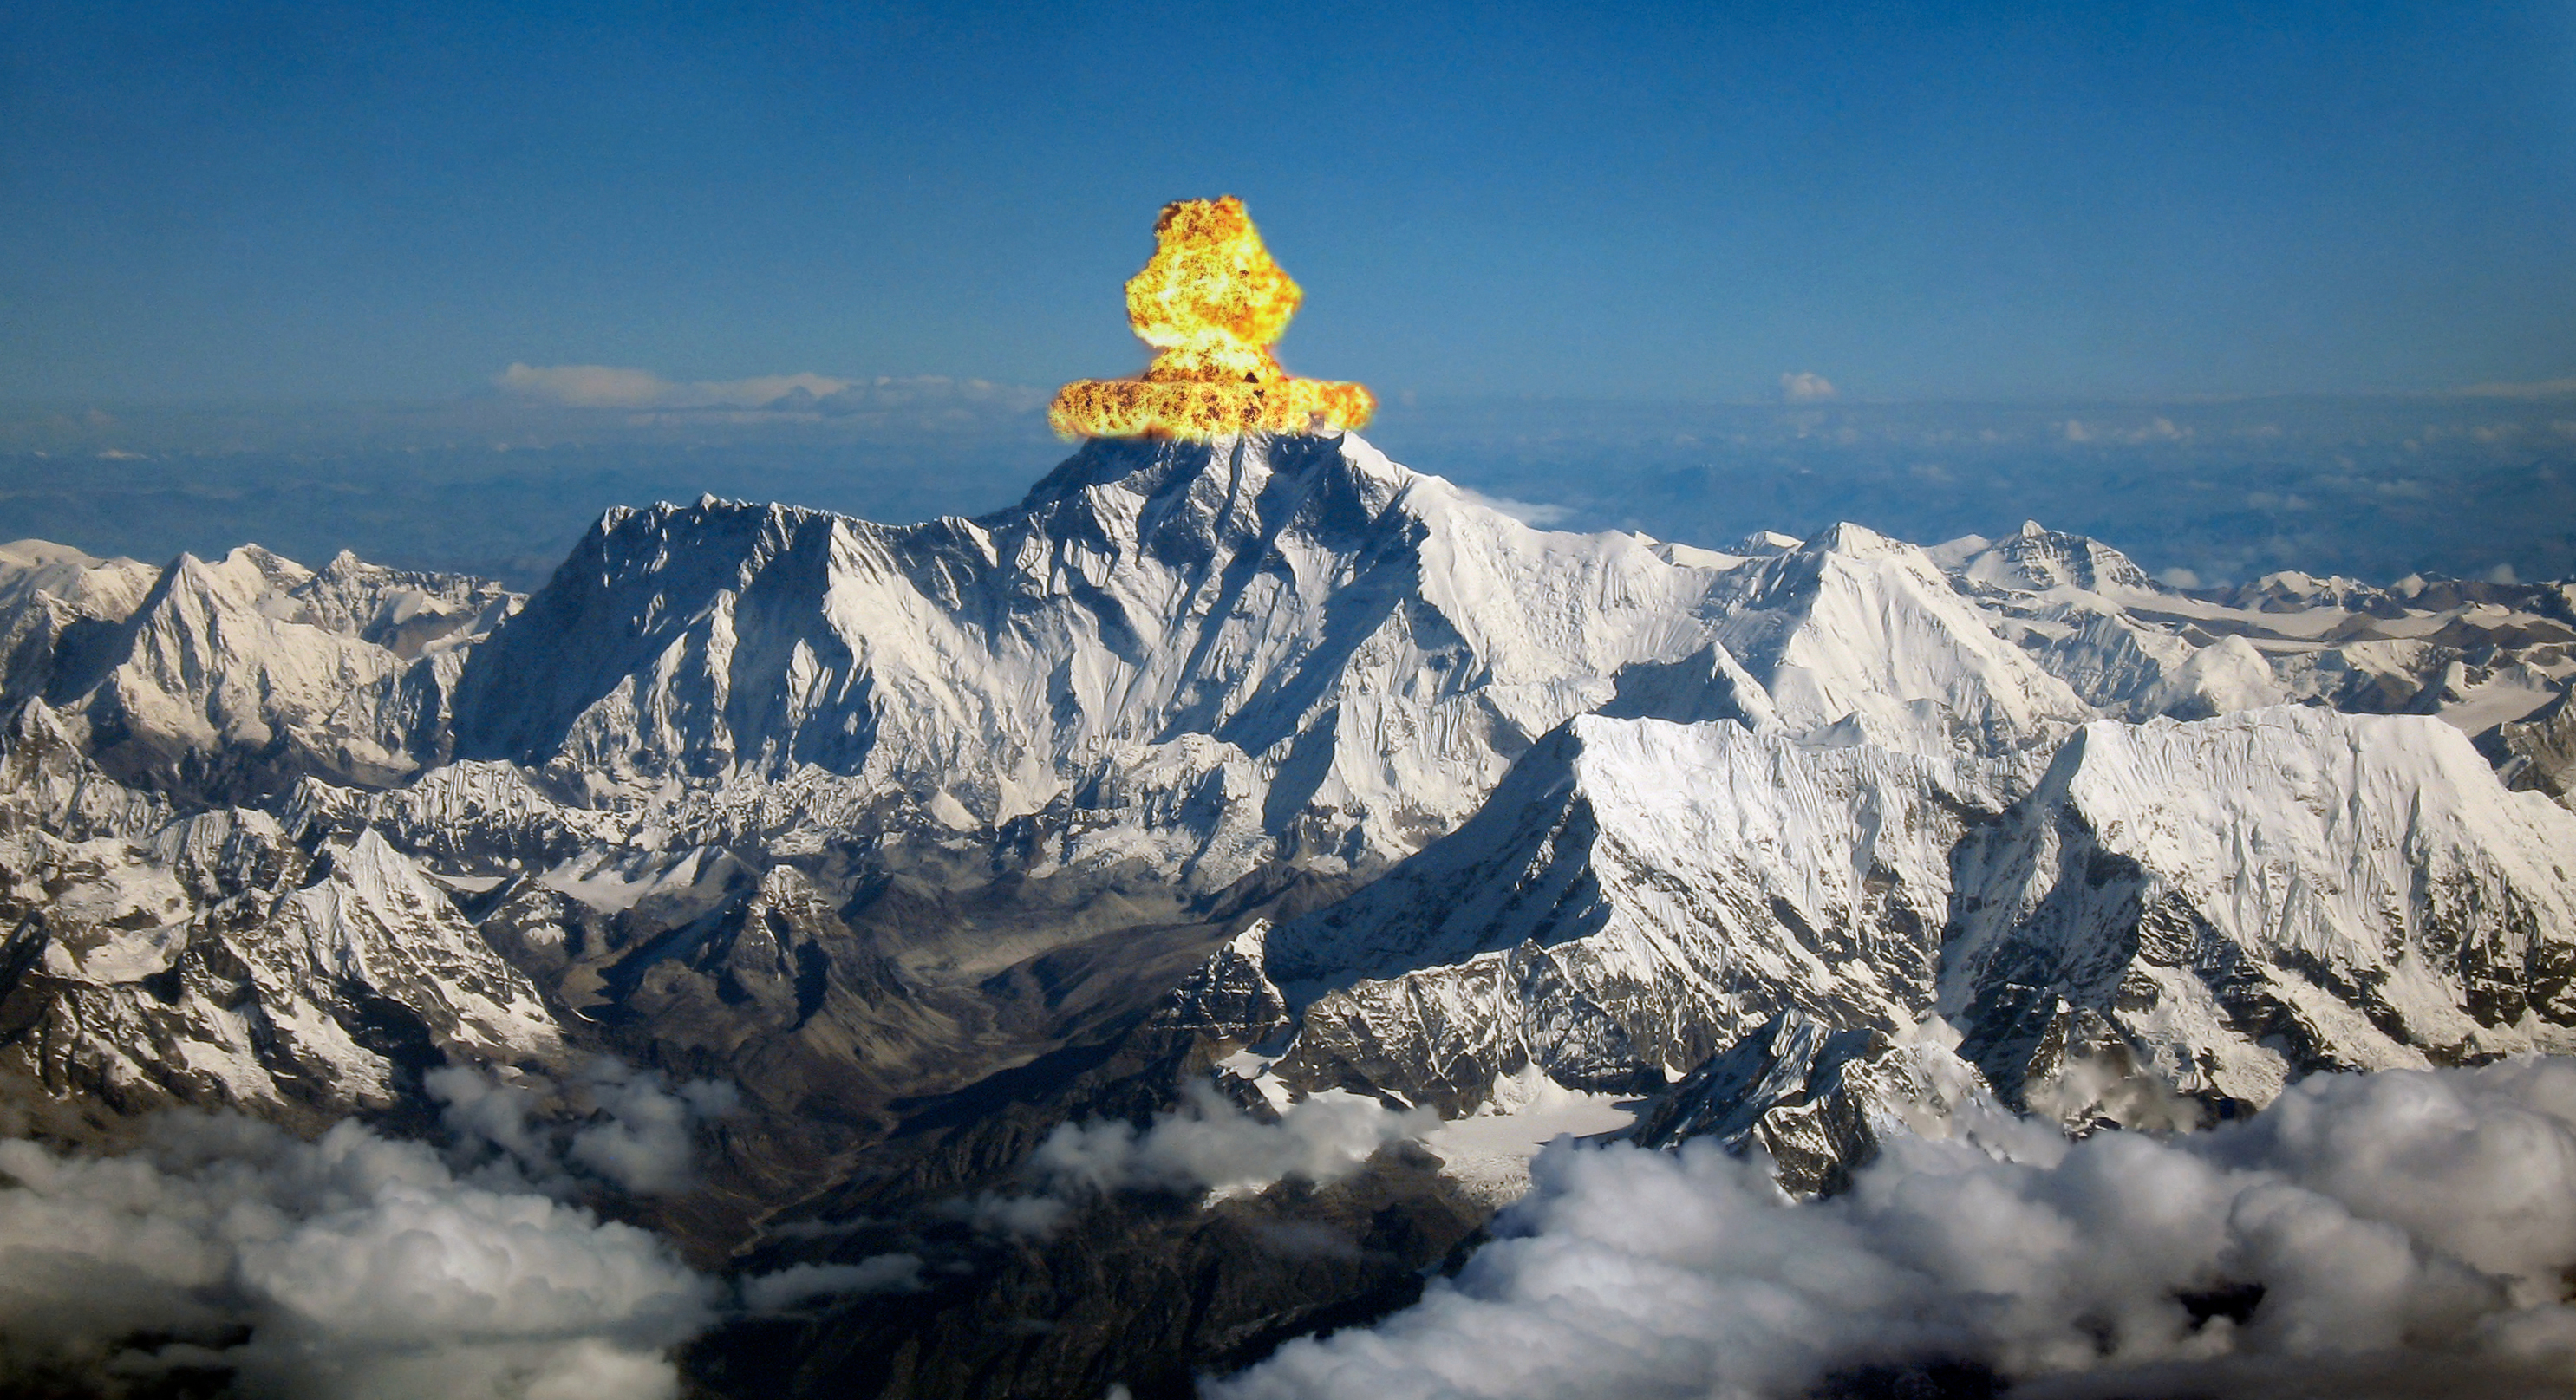 How to fix Everest? Start with explosives.